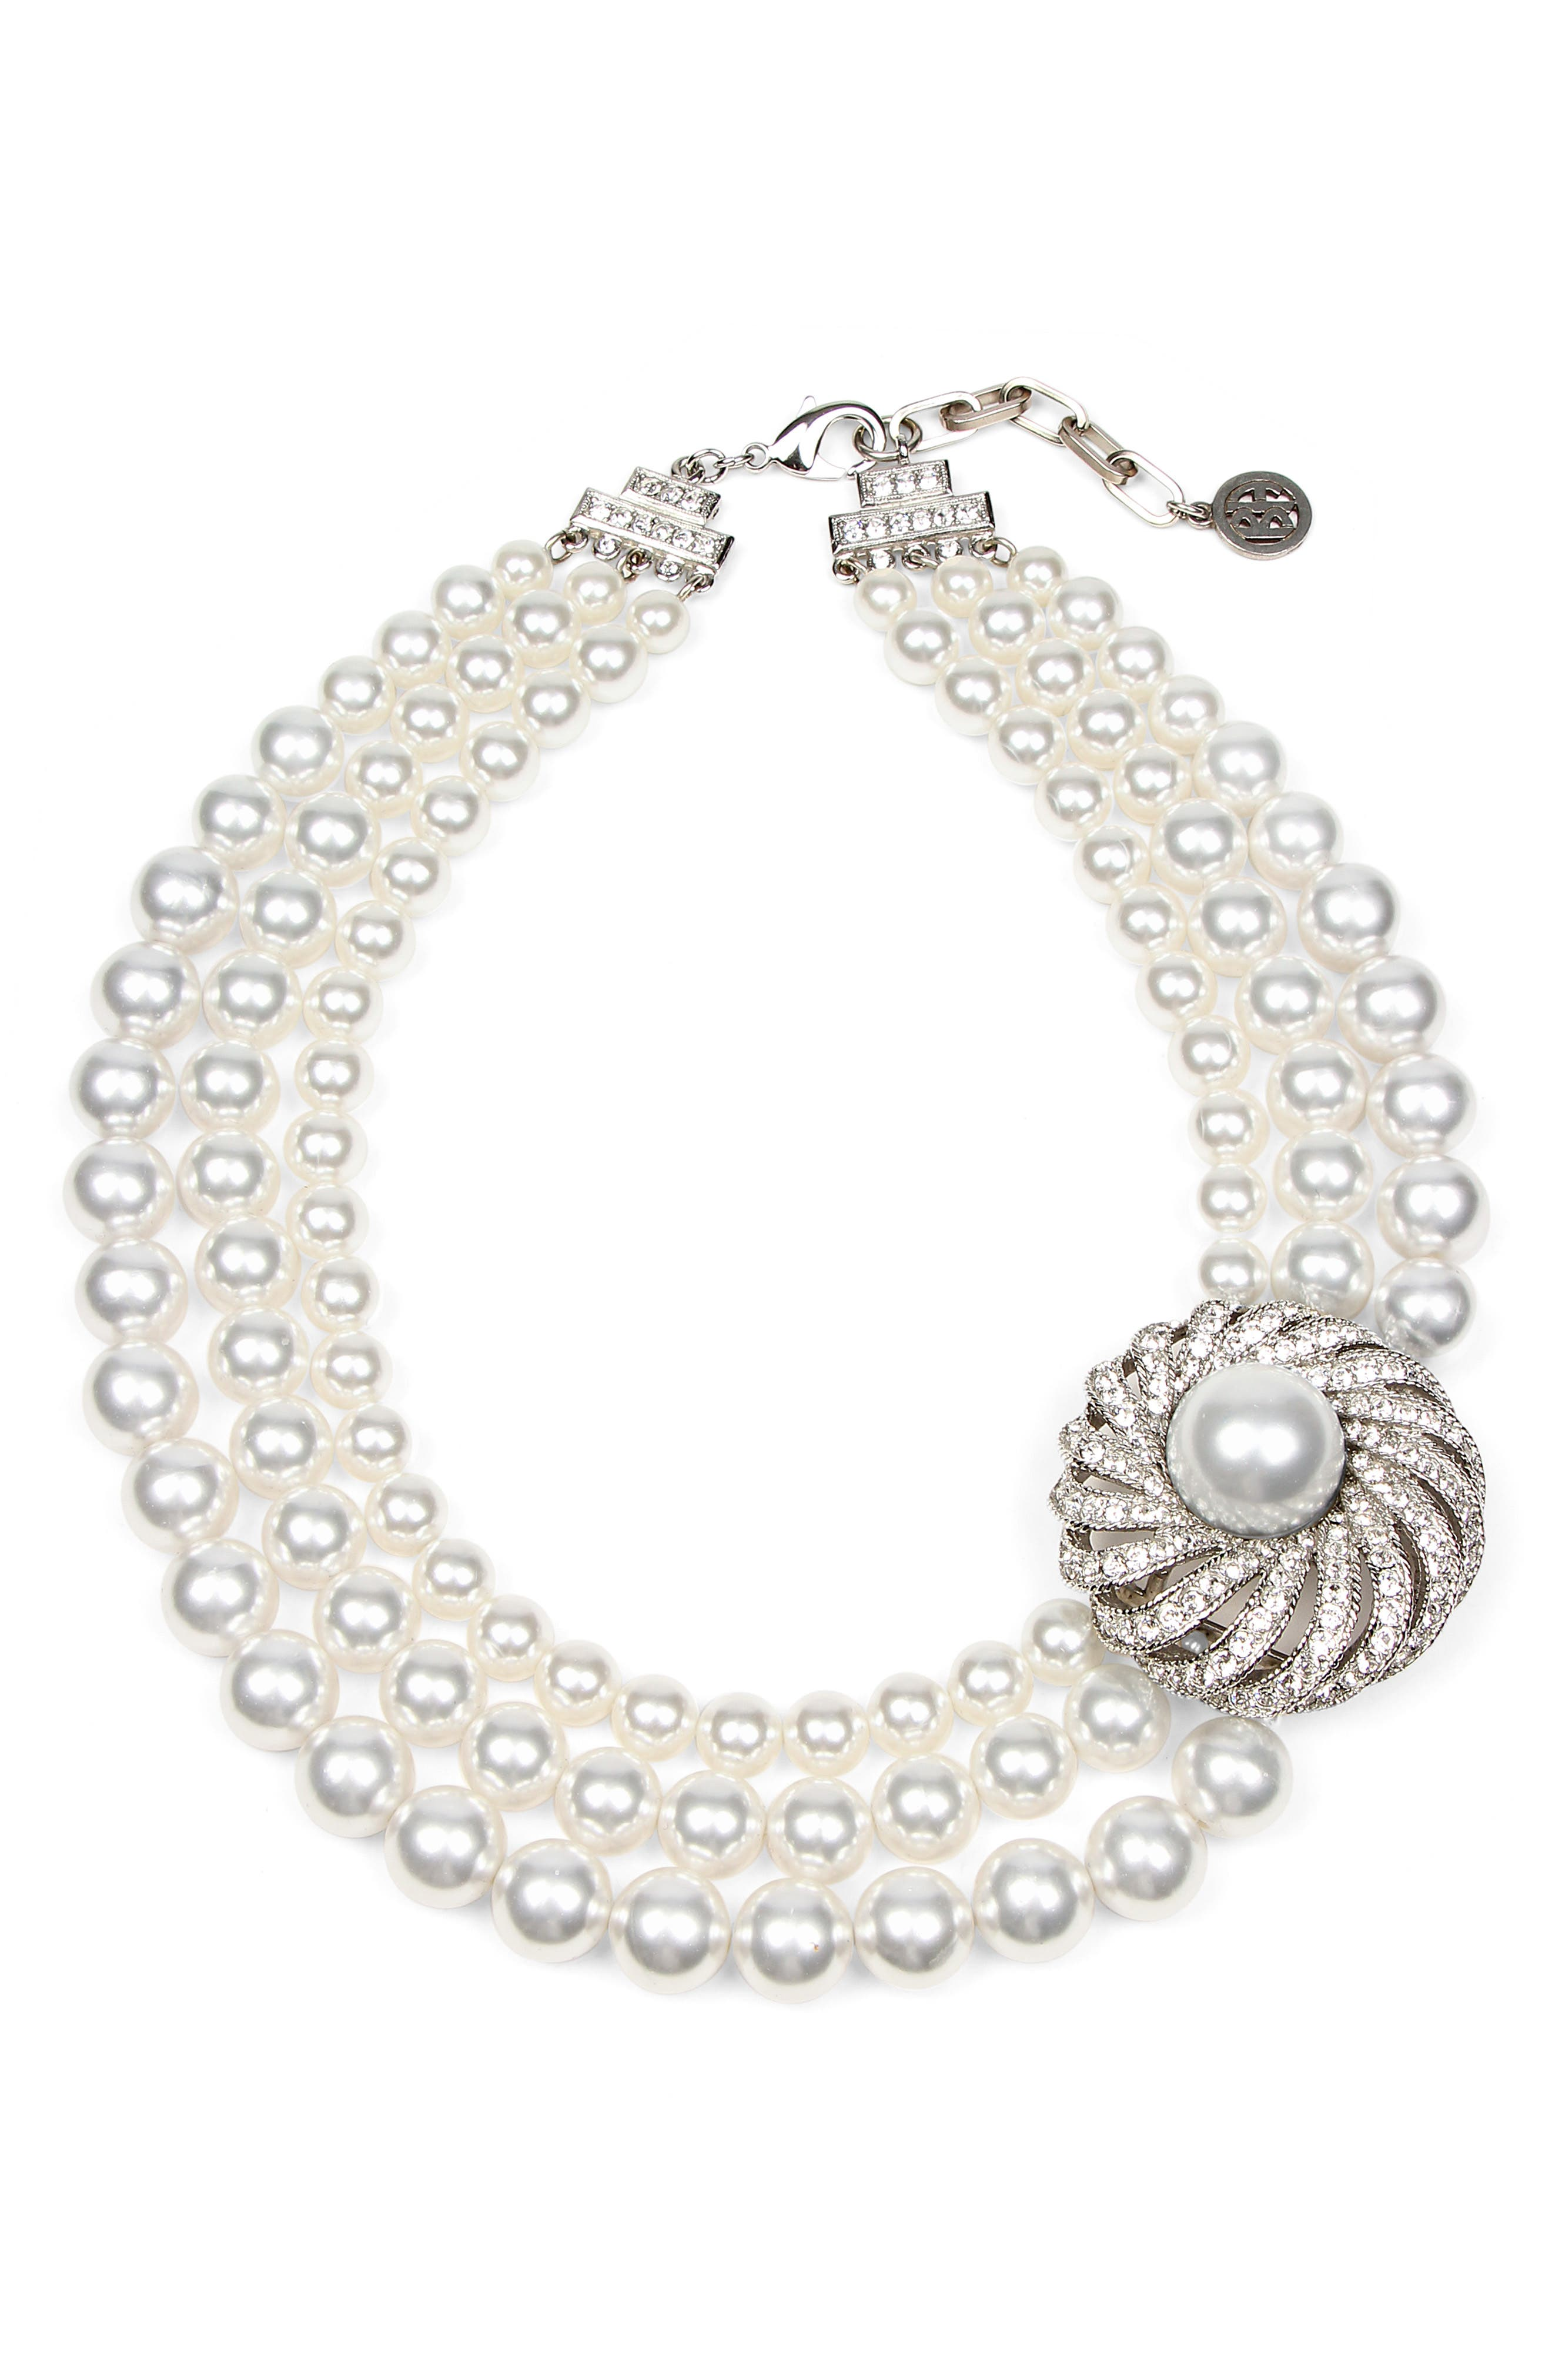 Triple Imitation Pearl Strand Collar Necklace,                         Main,                         color, SILVER/ BEIGE